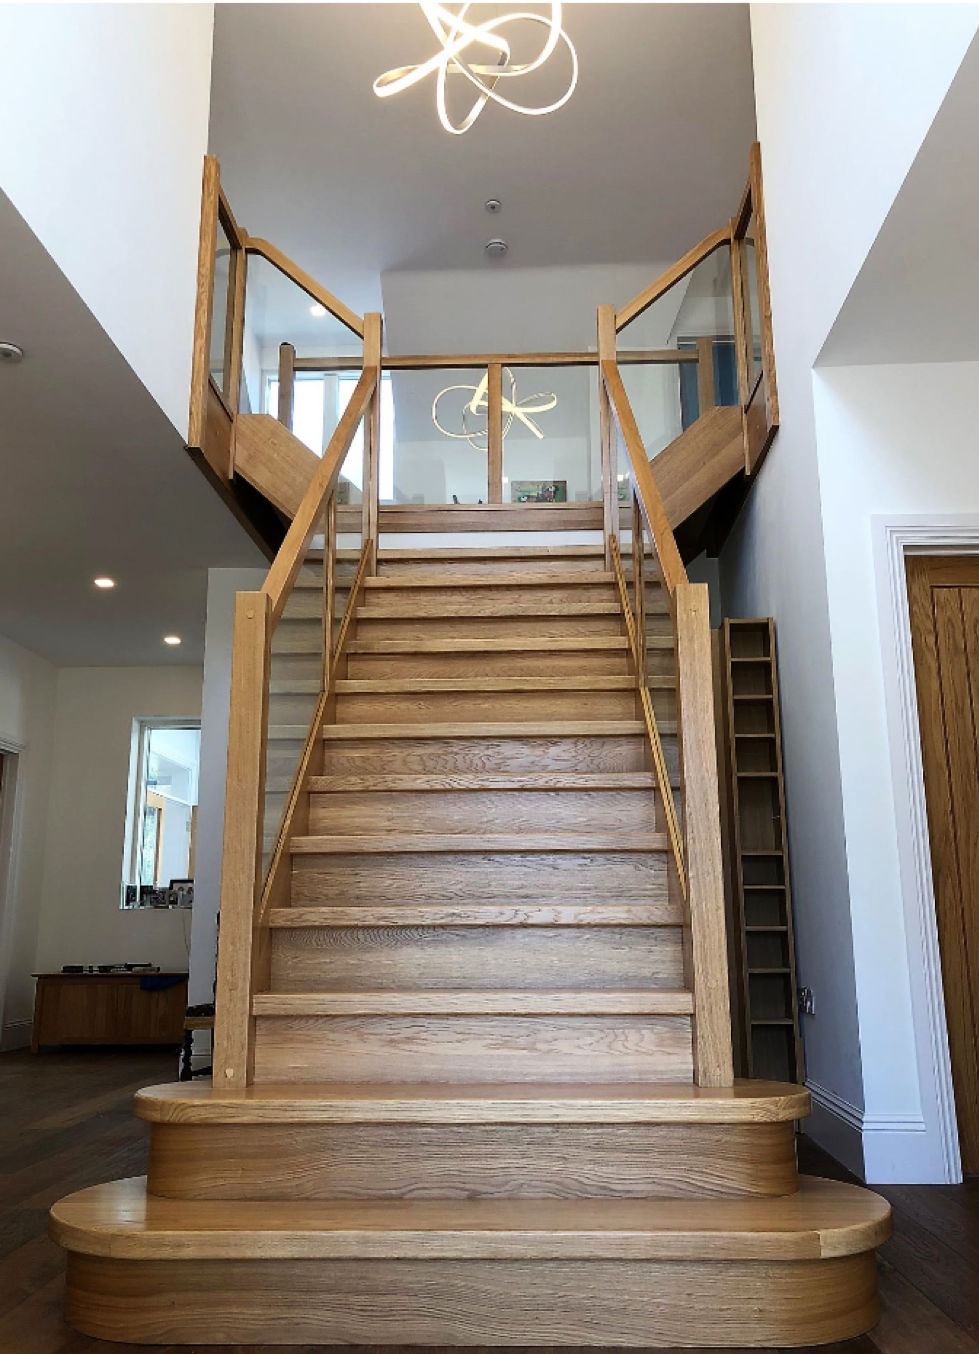 Solid Oak staircase with Glass balustrade